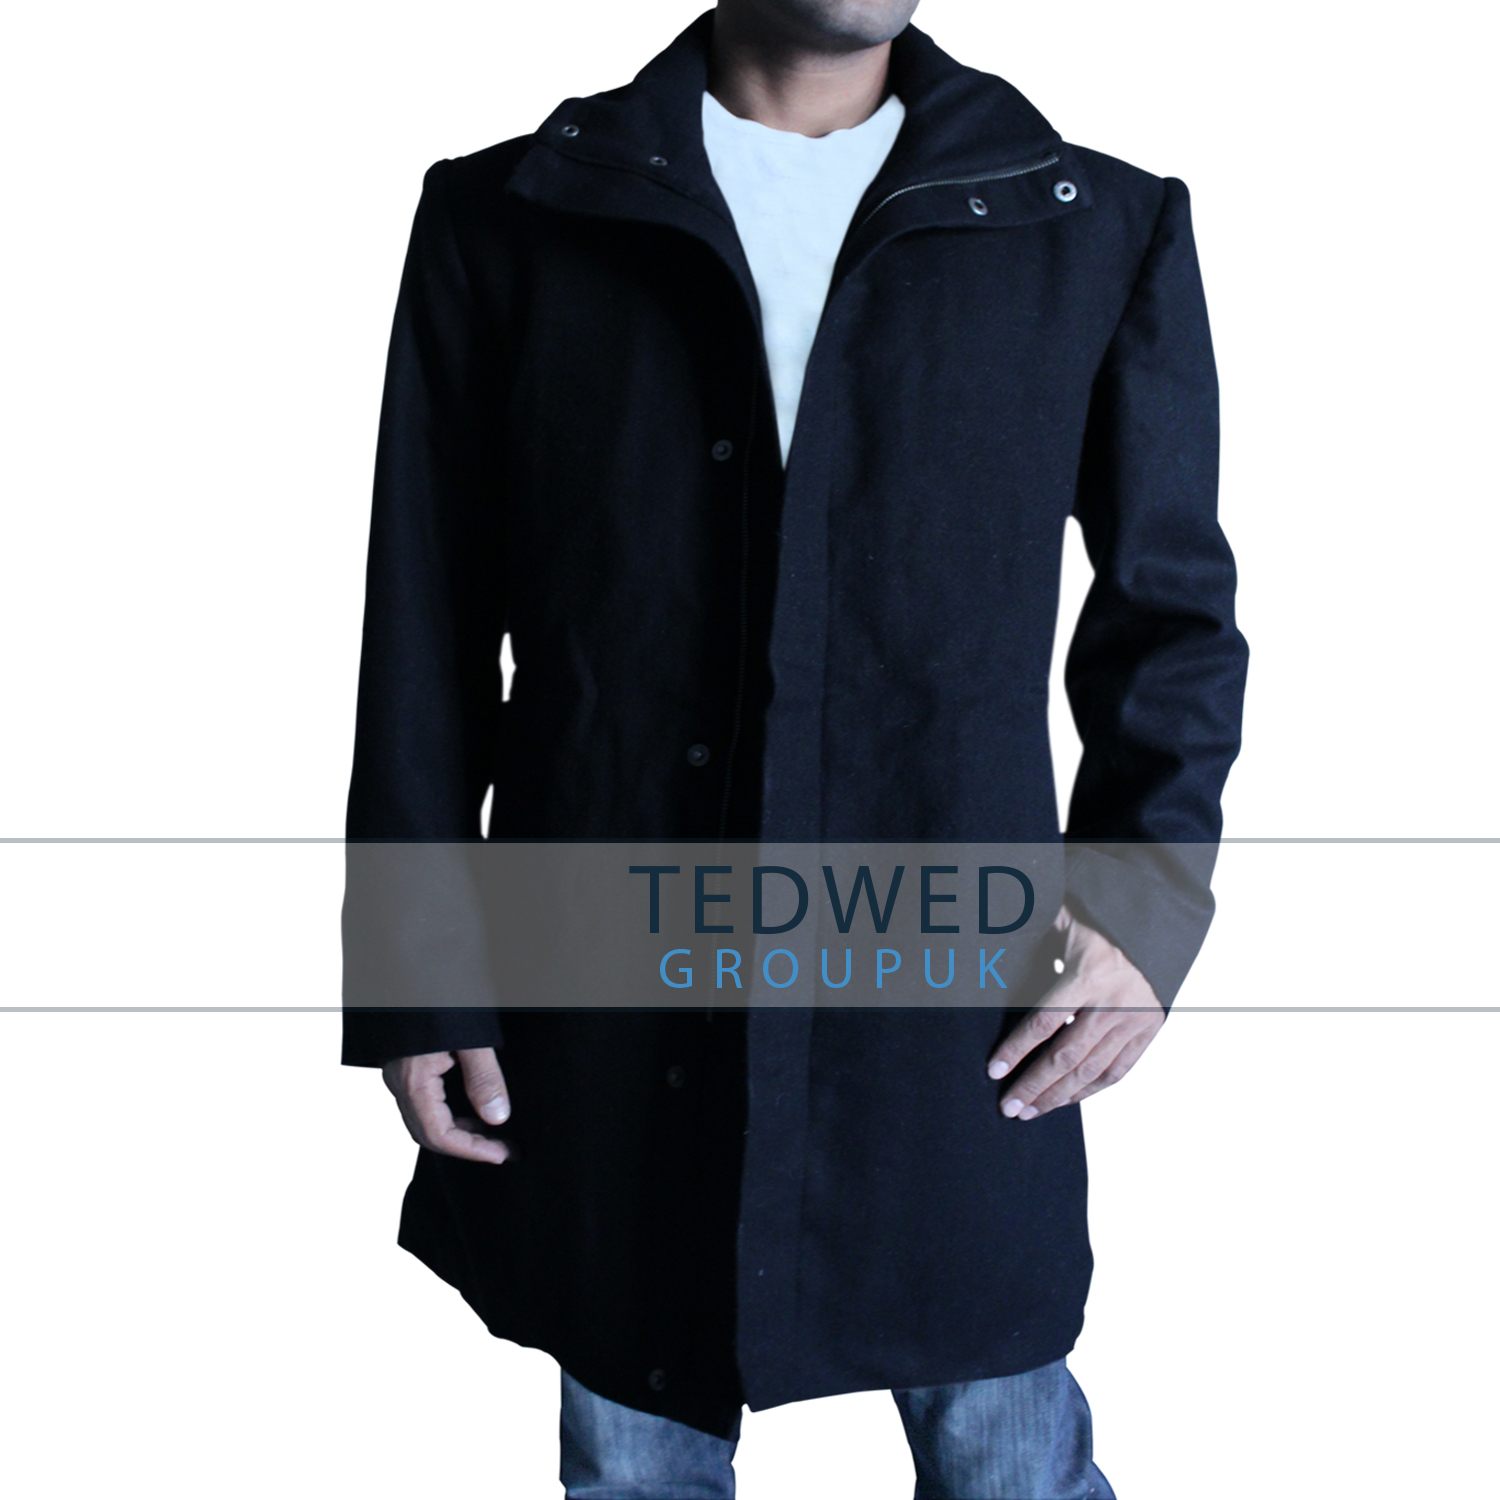 Kaulder The Last Witch Hunter Vin Diesel Coat